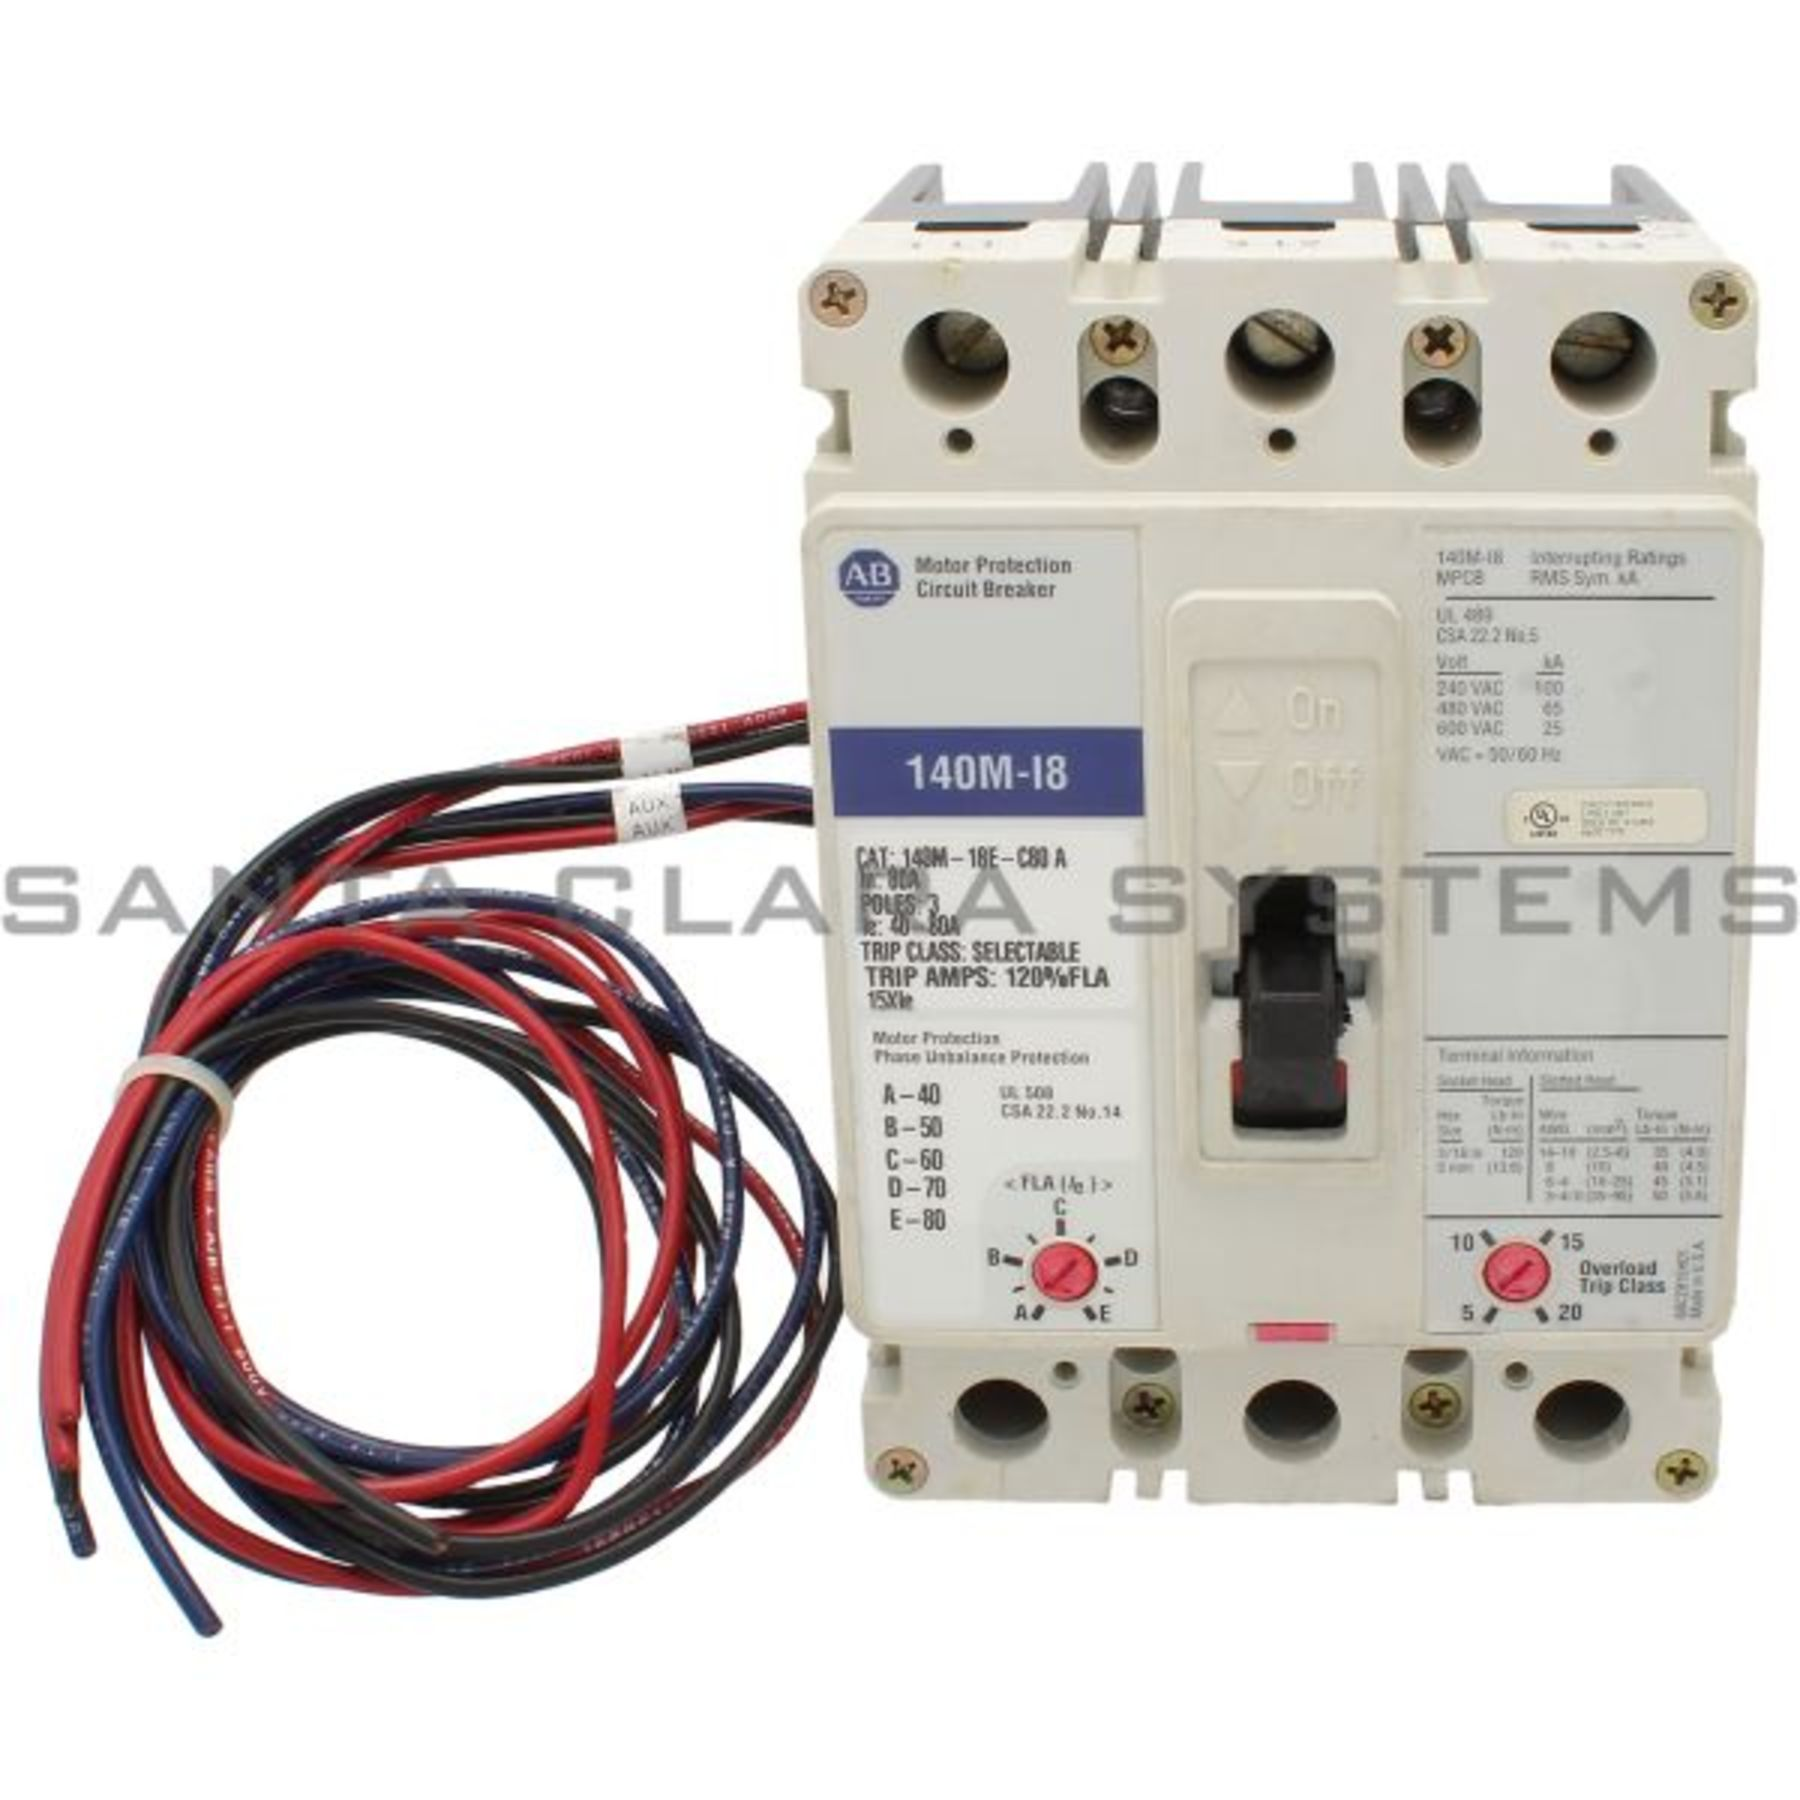 140m I8e C80 Tx Motor Protection Circuit Breaker In Stock And Ready Wiring Allen Bradley Product Image